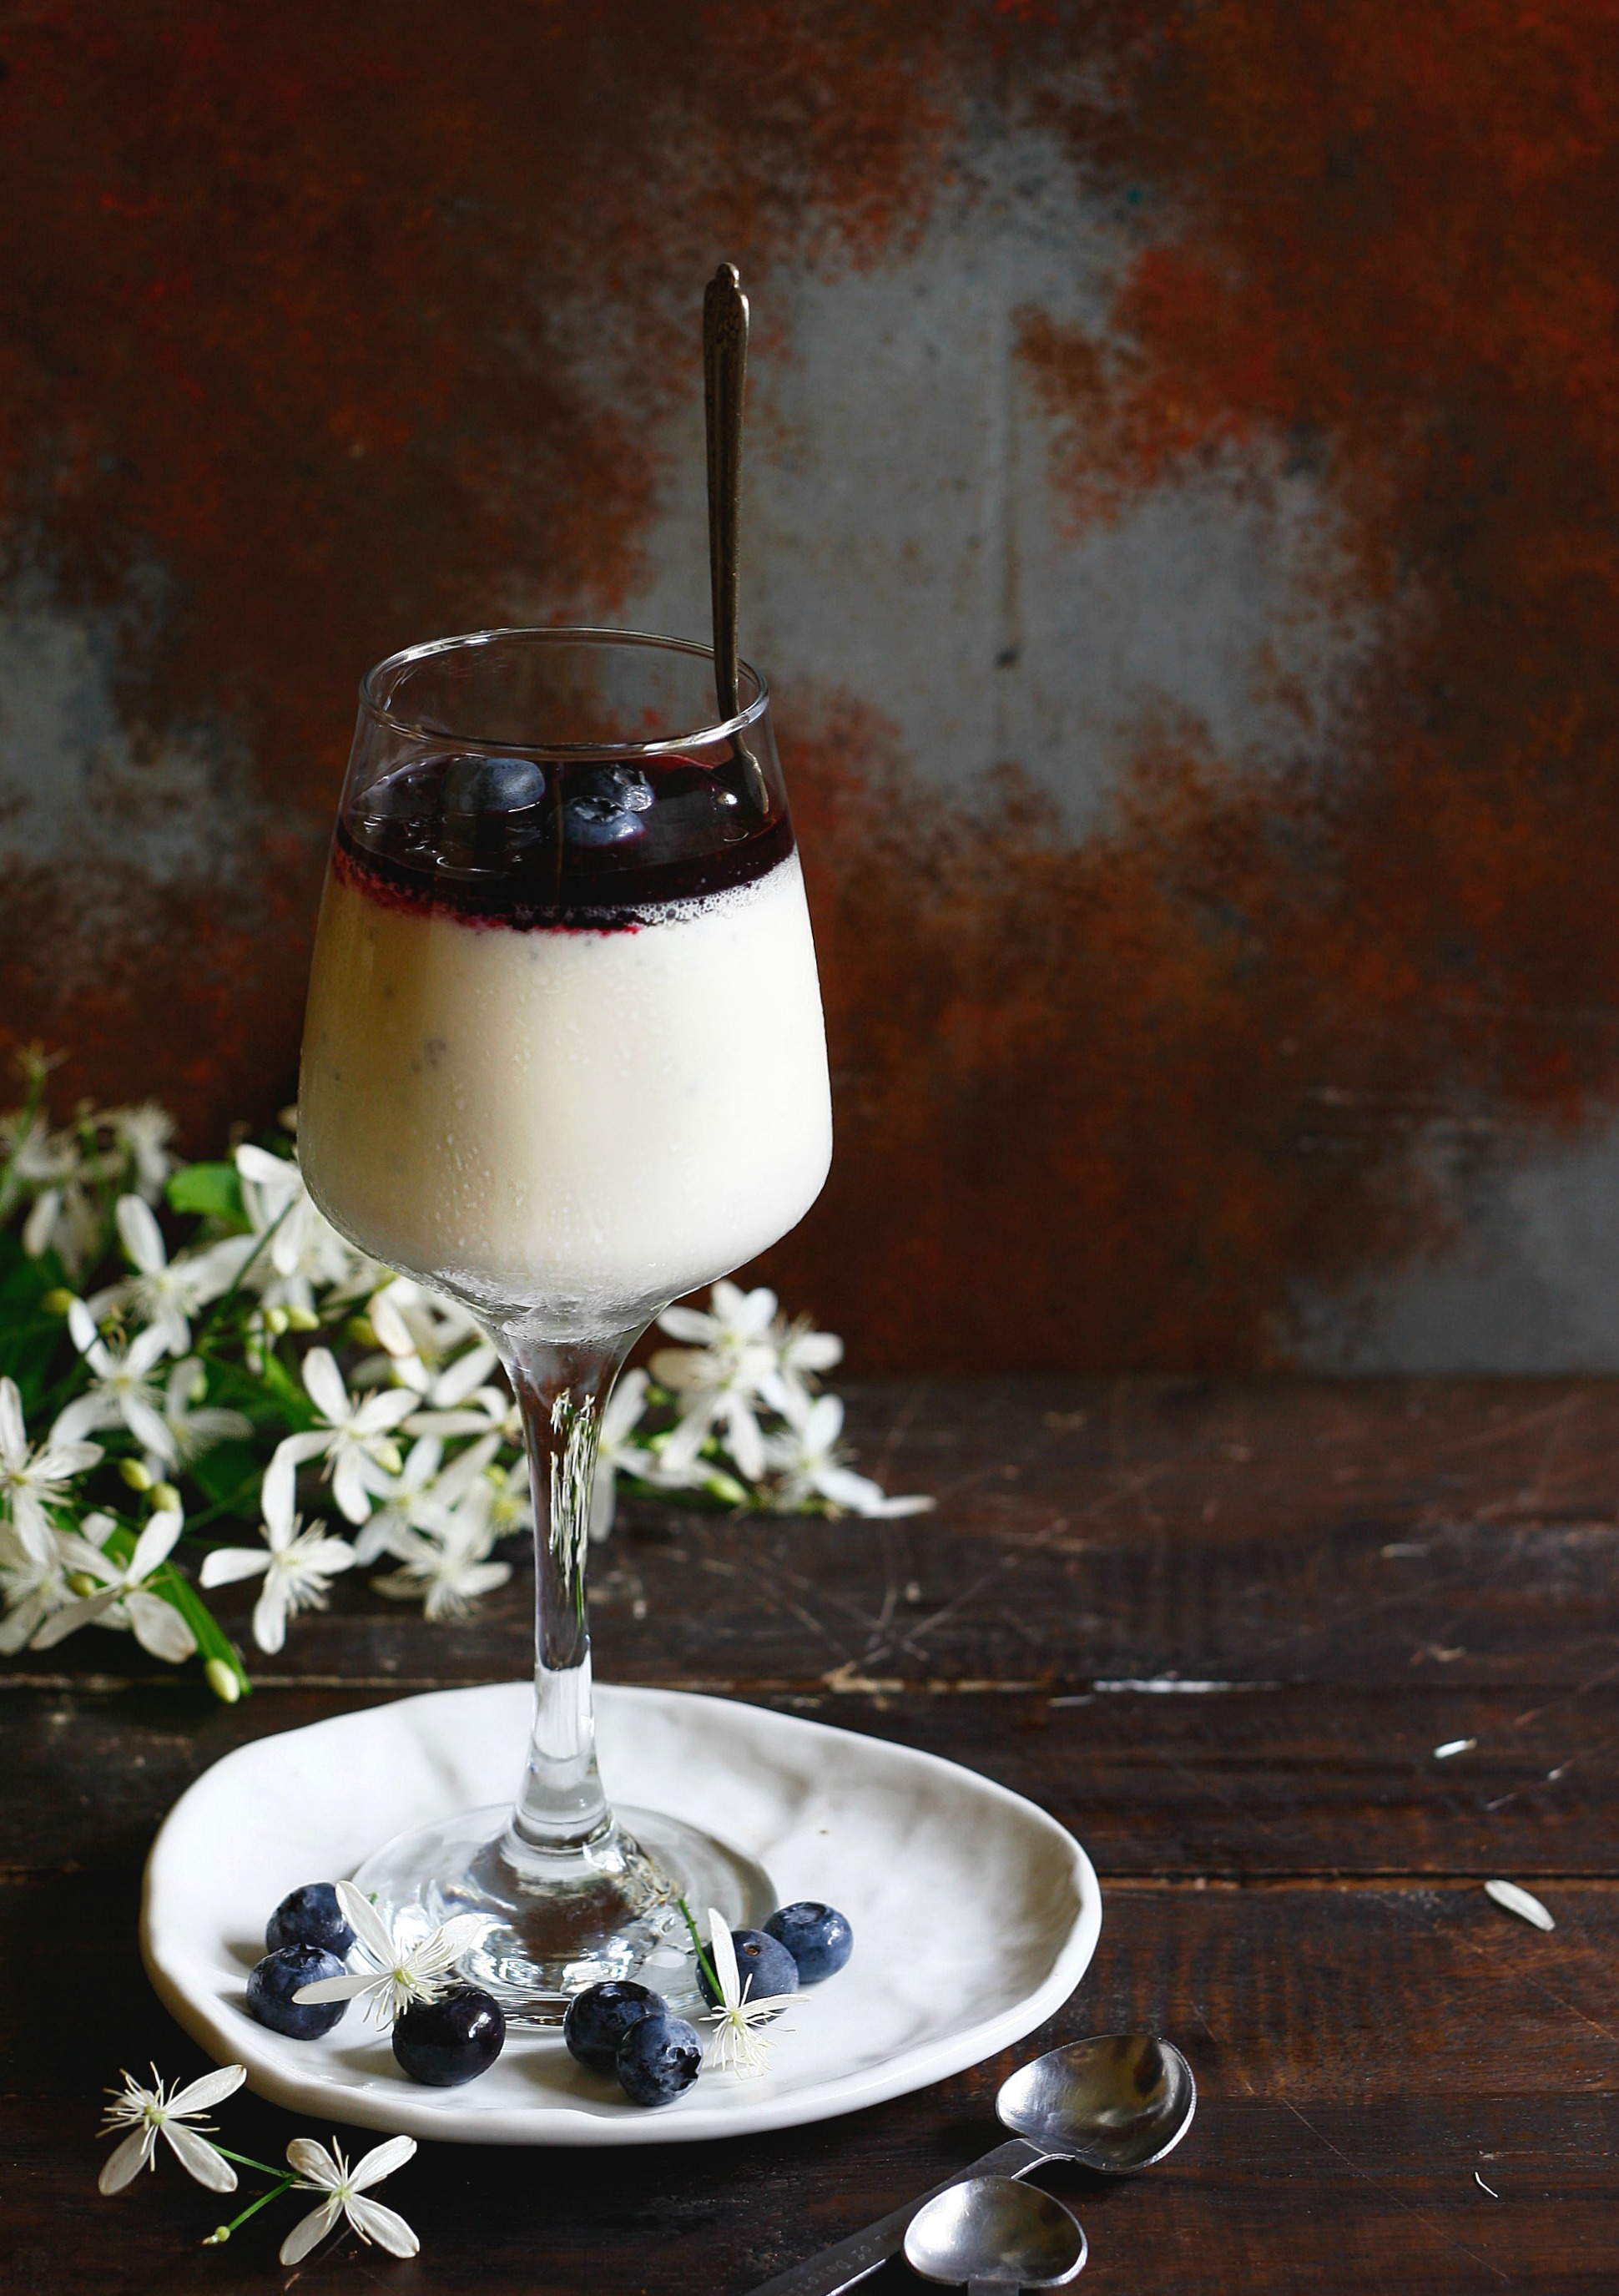 Coconut pannacotta with blueberry gin compote